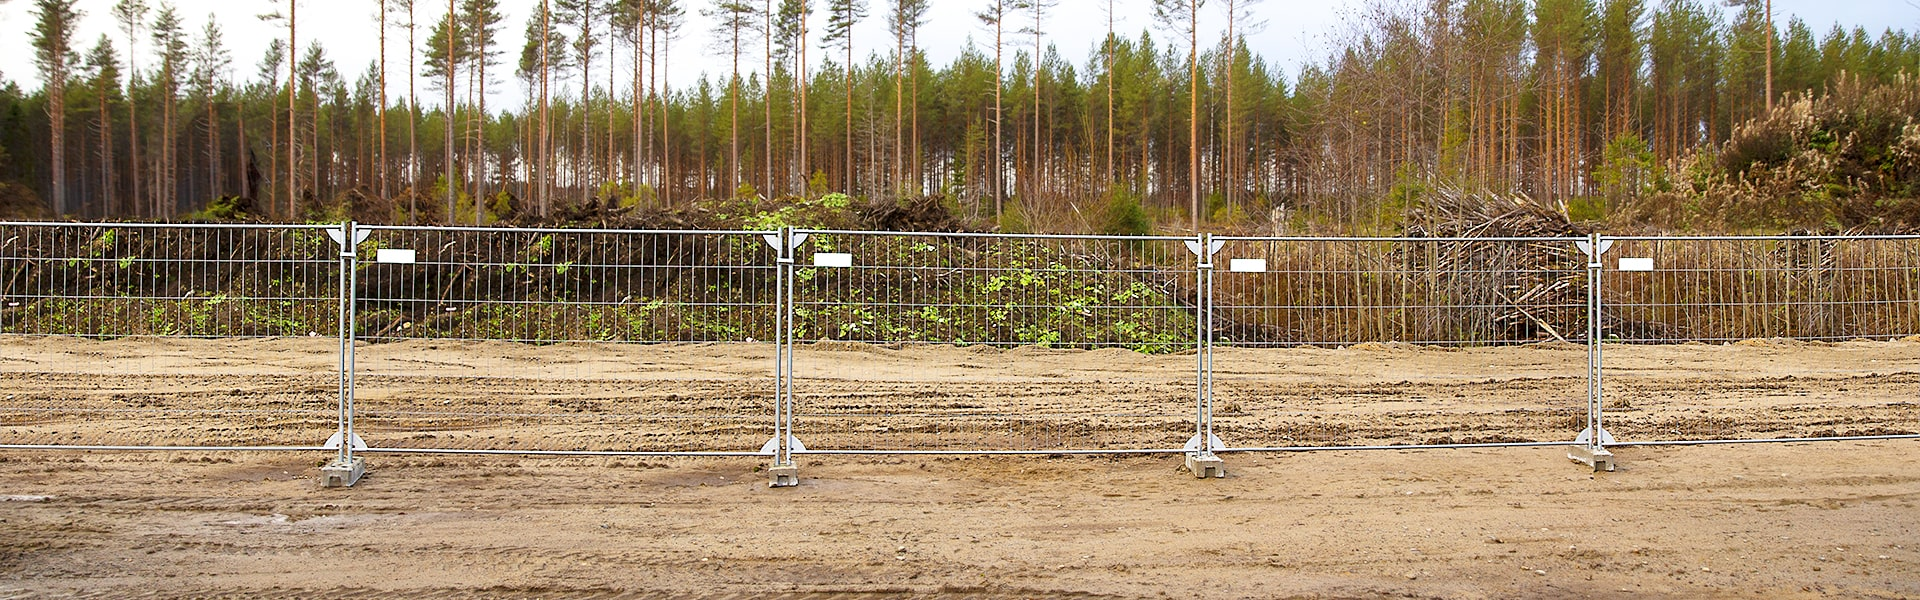 Temporary & mobile fences